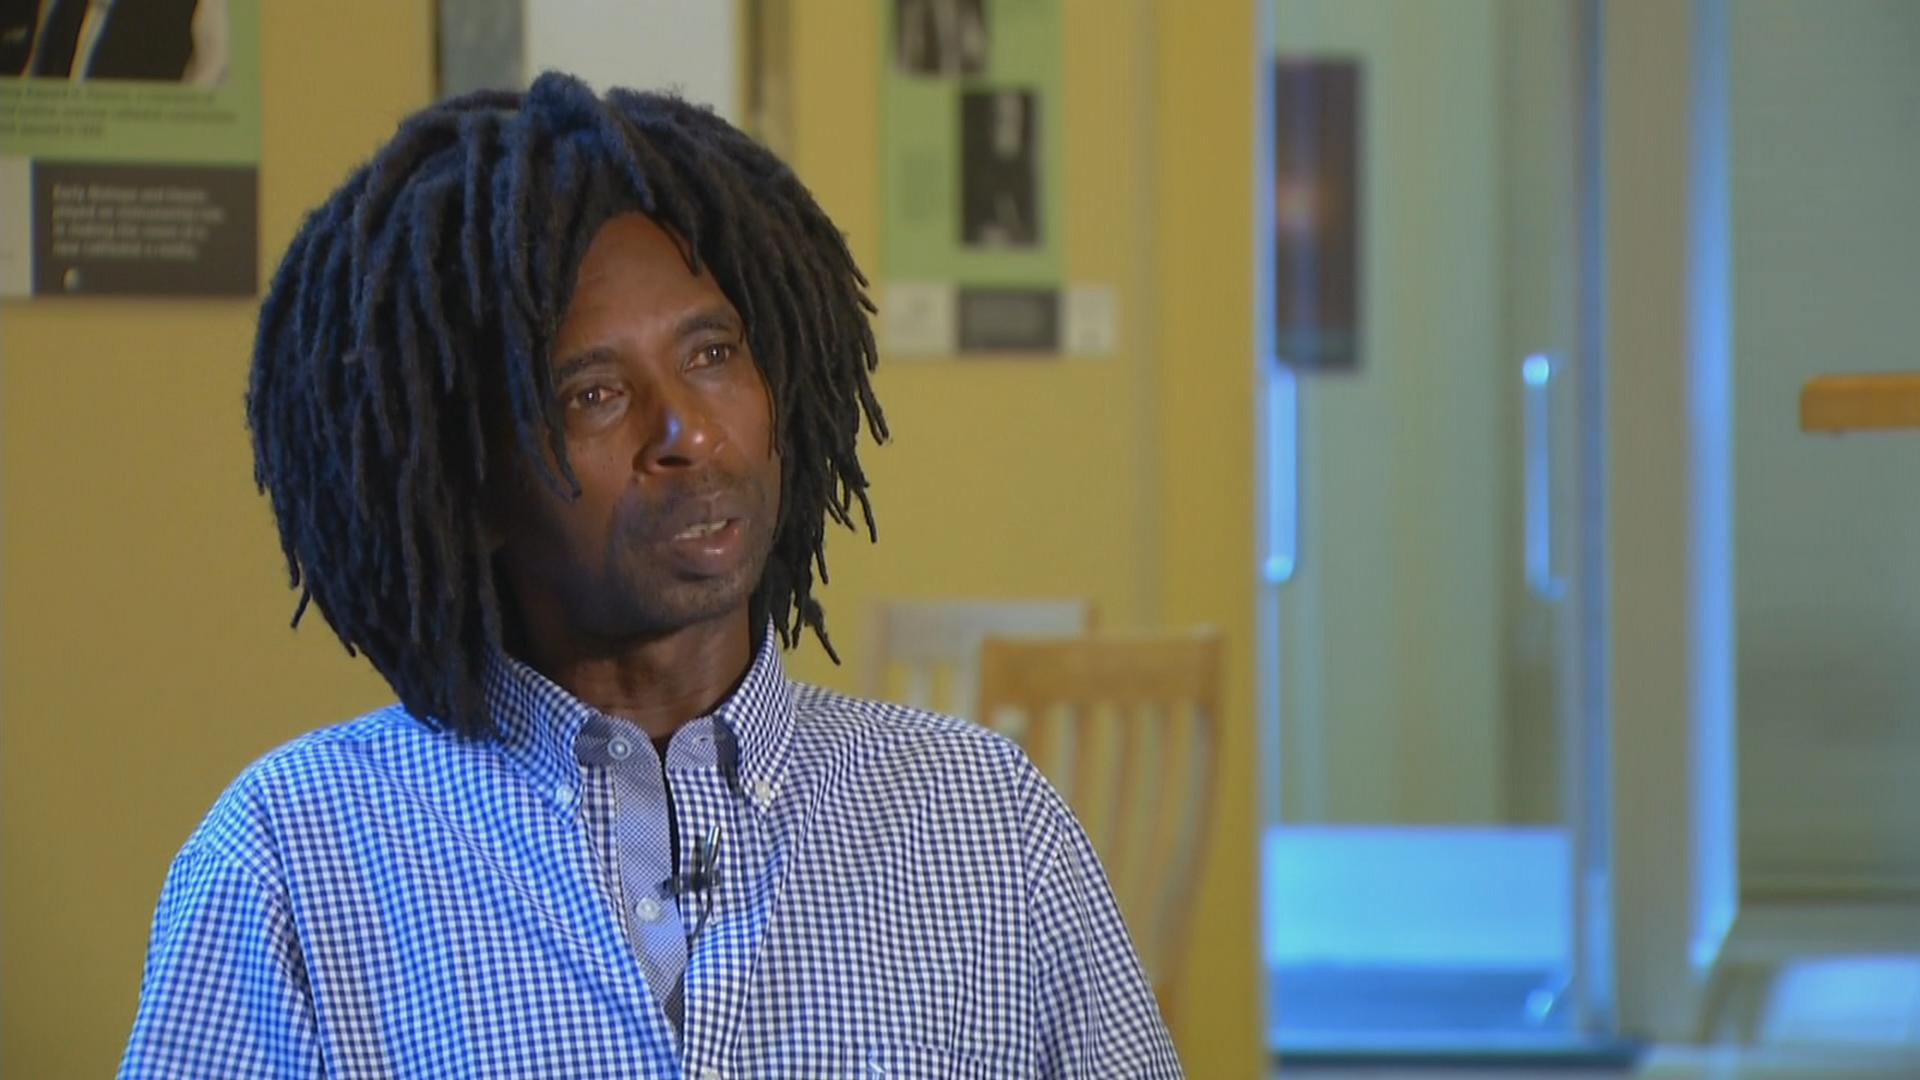 Filmmaker Kevin Epps talks about his experience after being arrested in a fatal shooting.